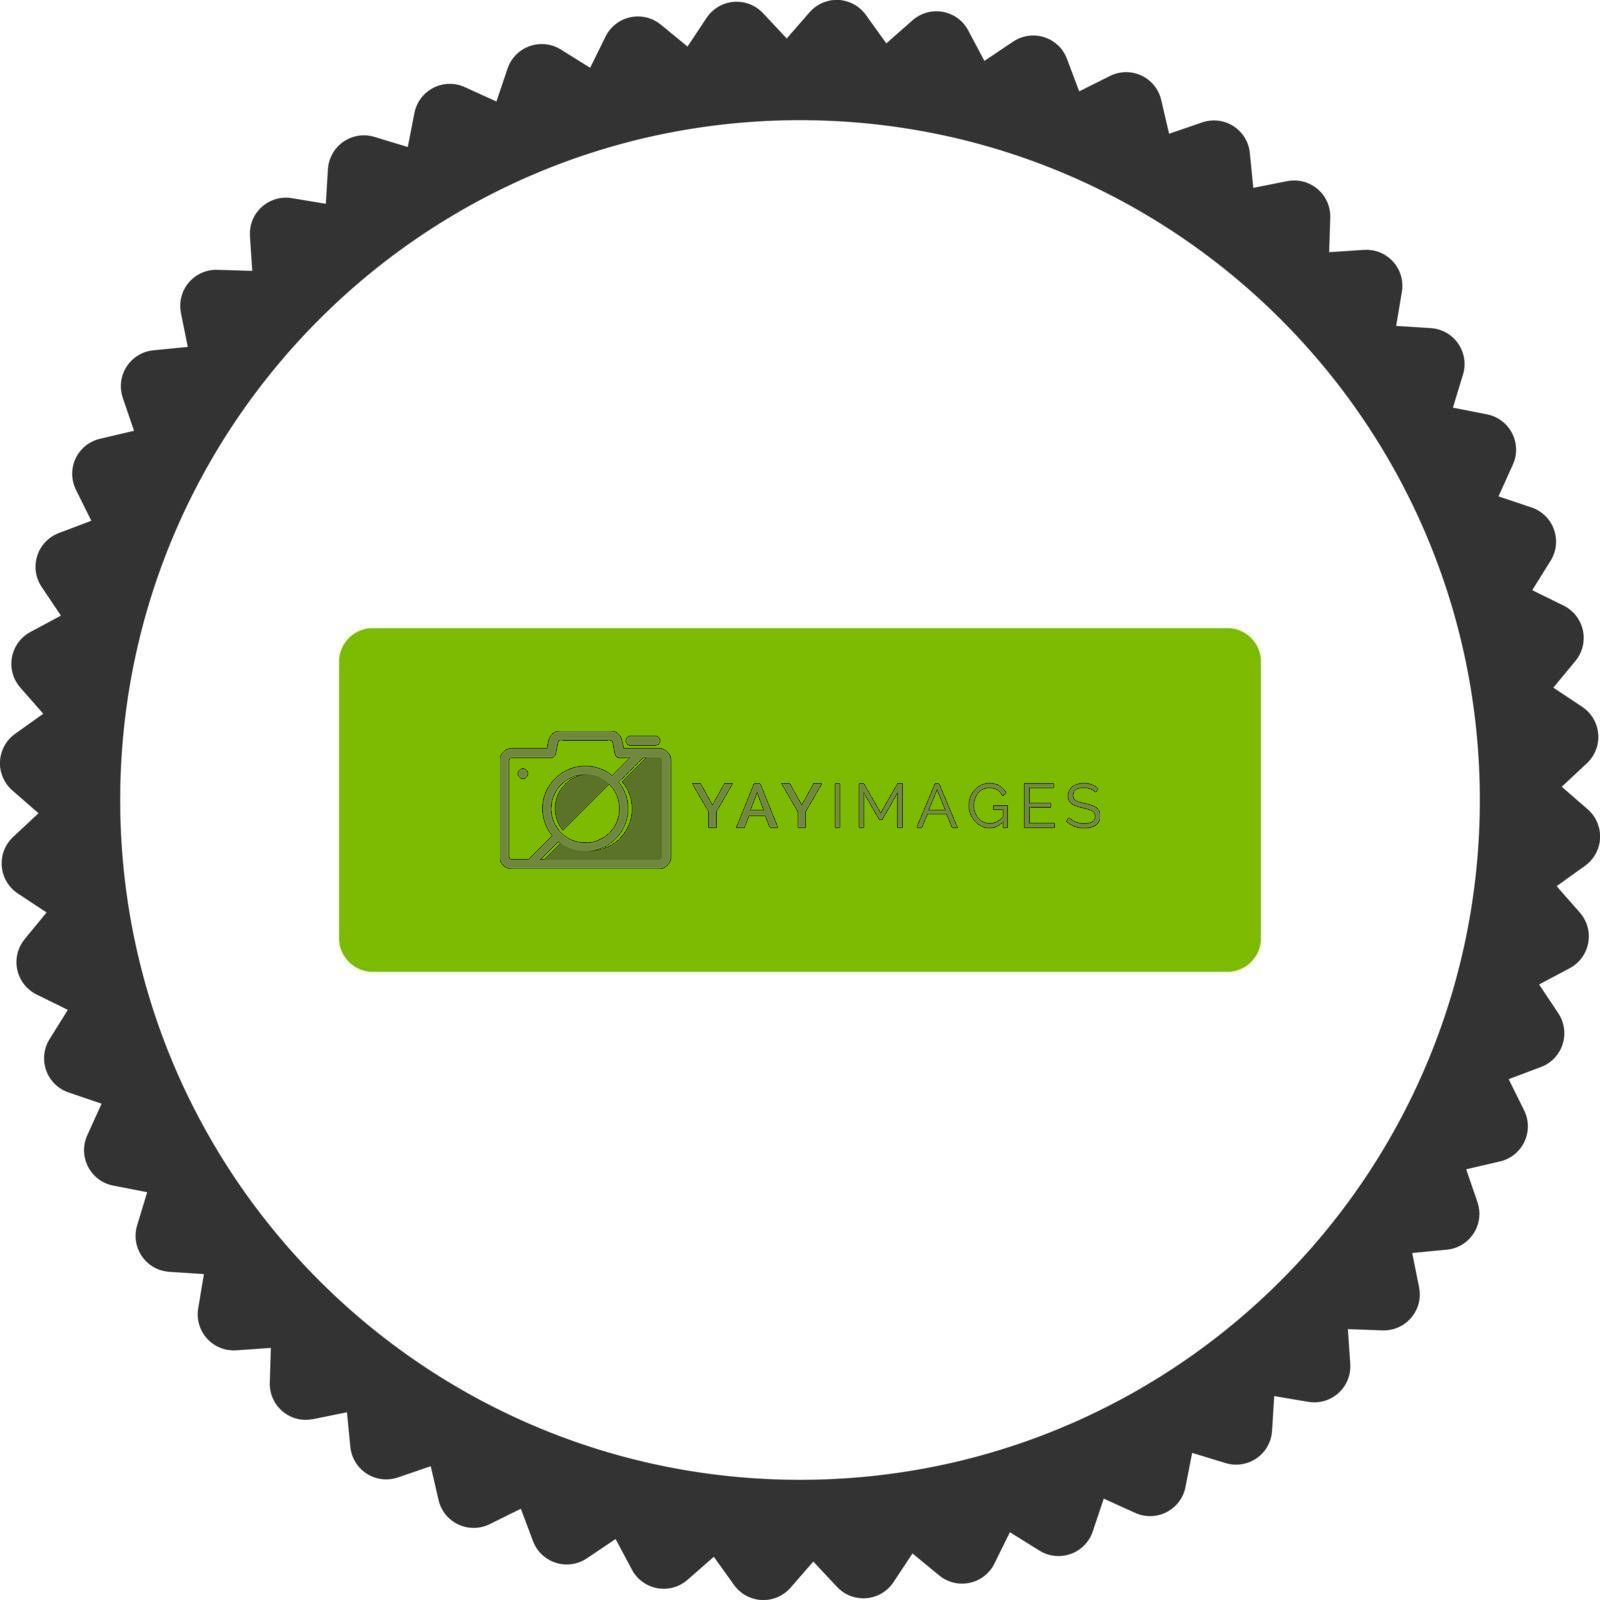 Minus flat eco green and gray colors round stamp icon by Aha-Soft